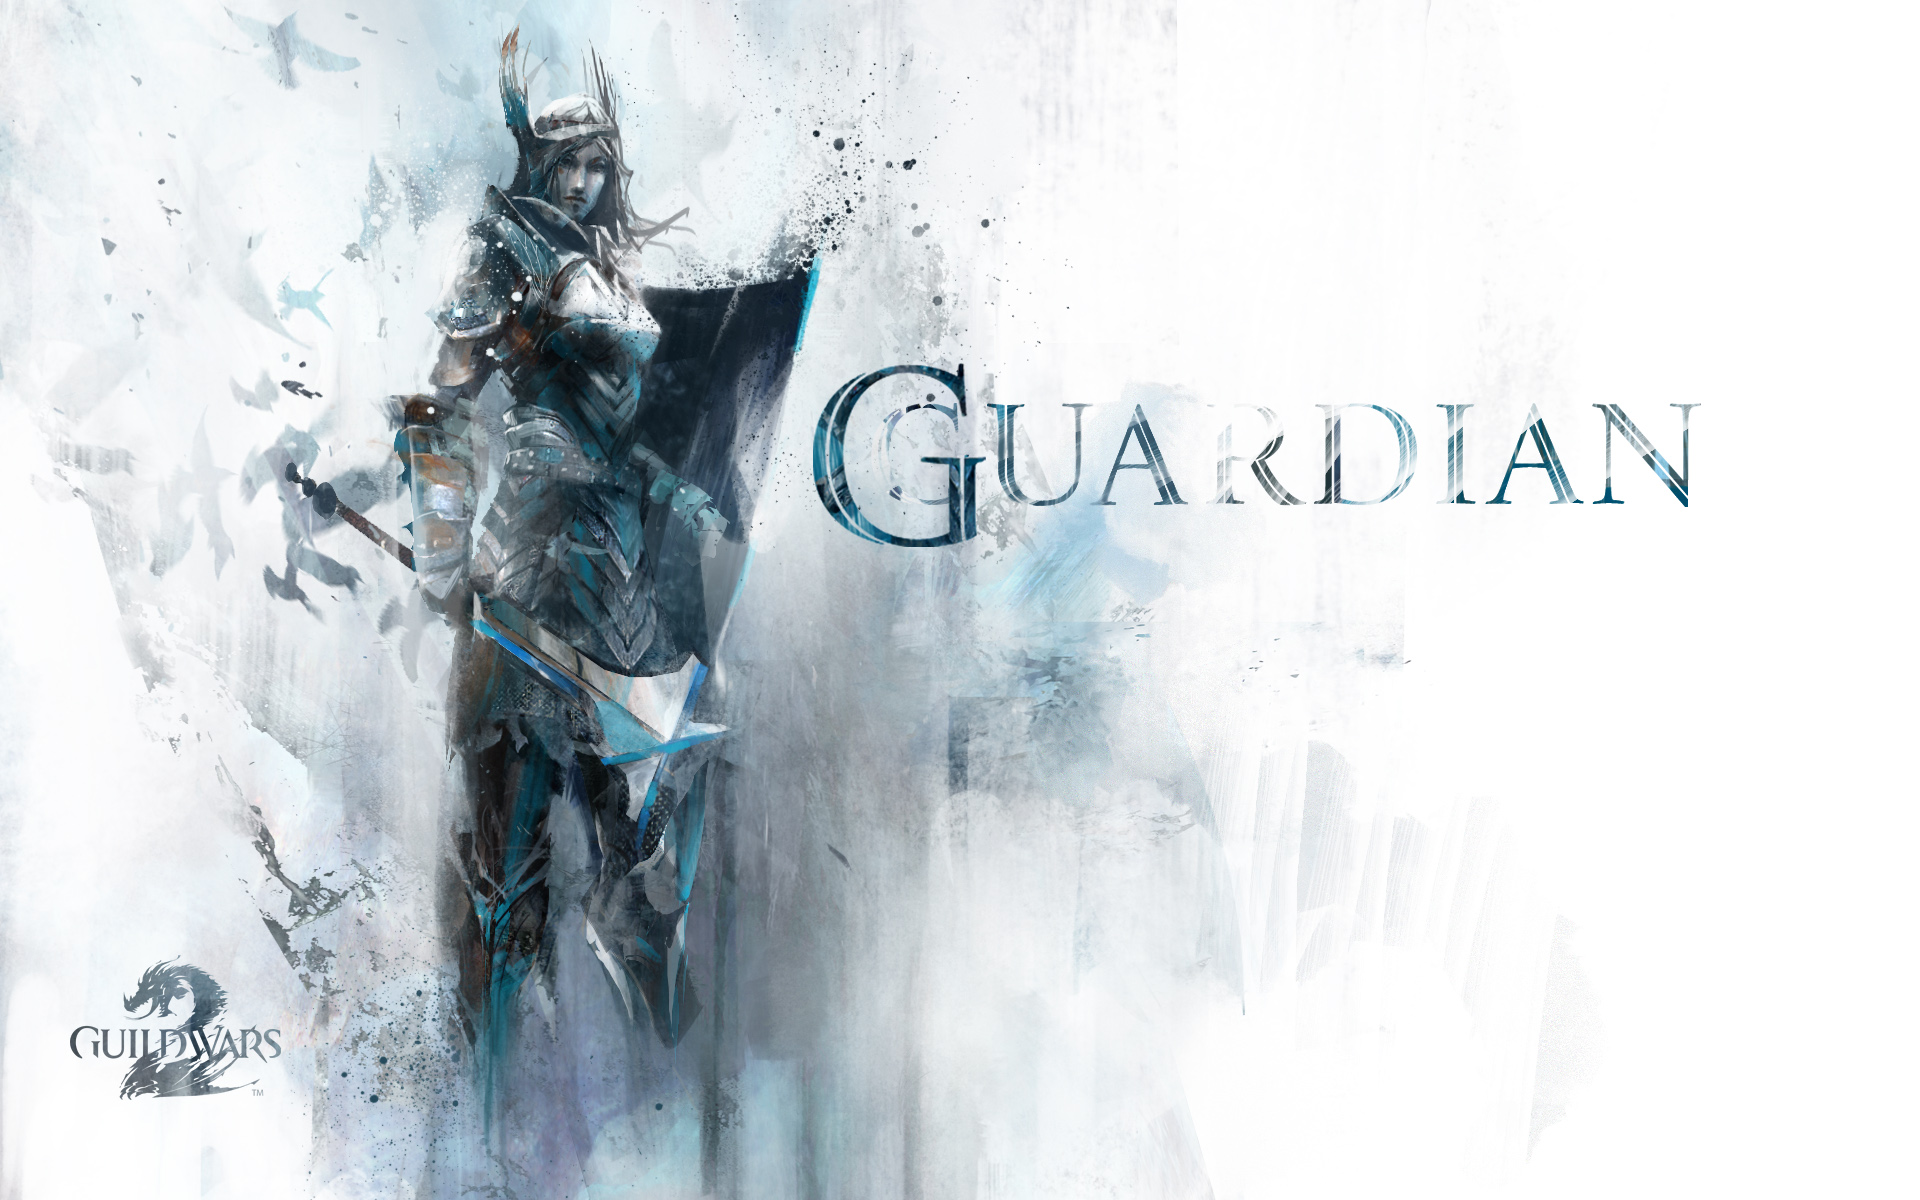 The guardian - take others under your wings and protect them with your strength!